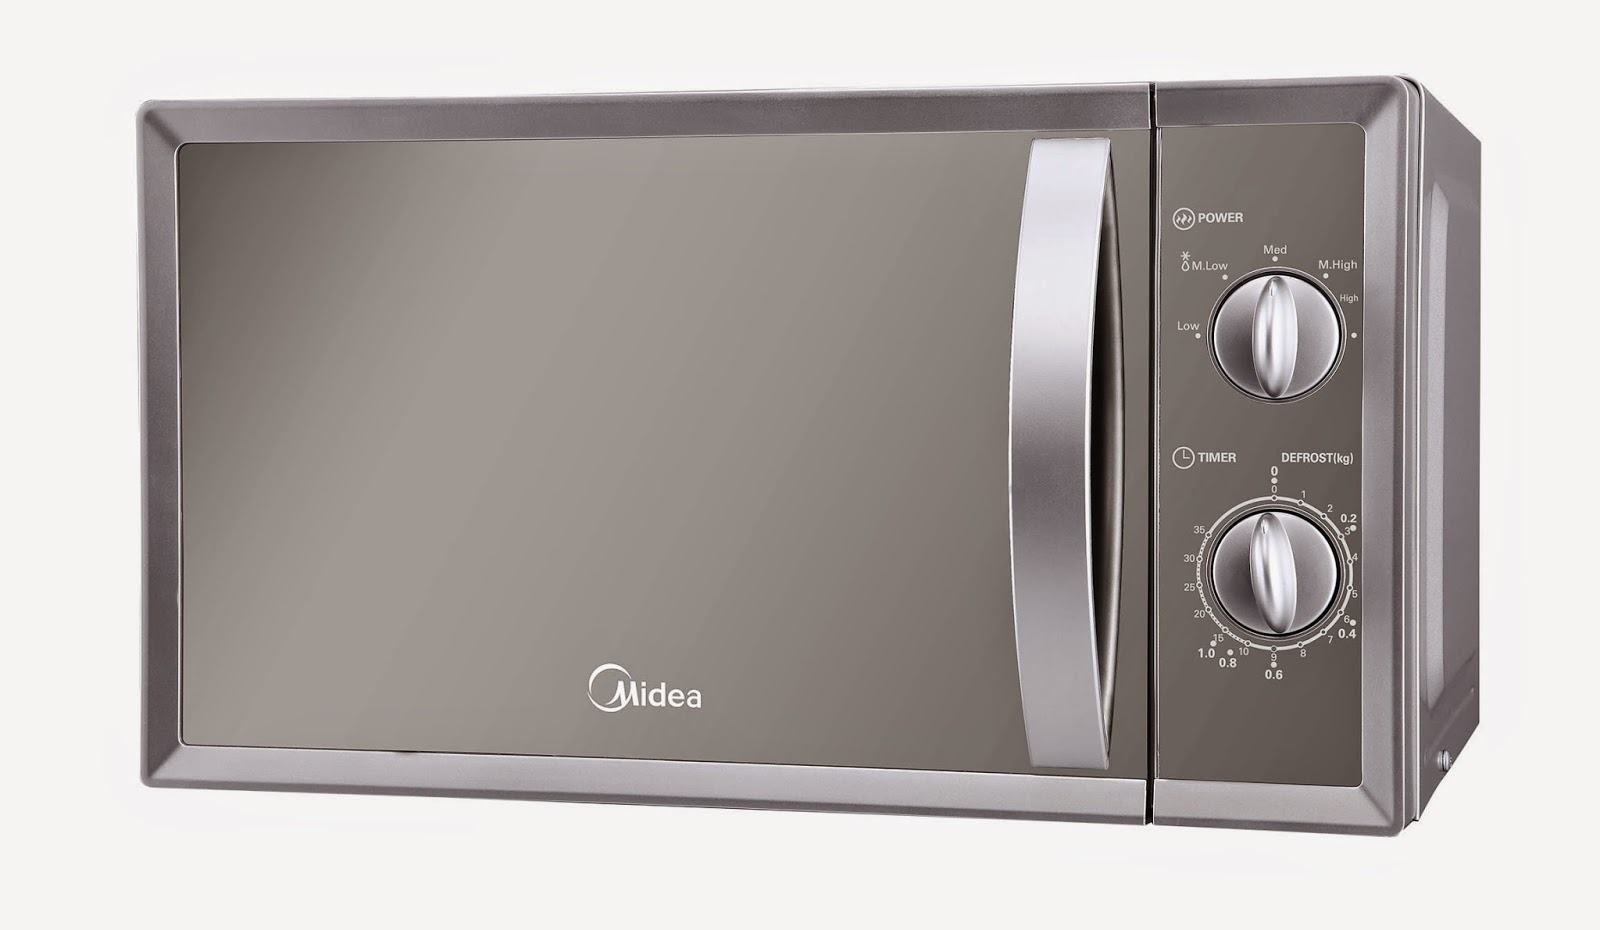 Quick Healthy Meals With Midea Microwave Oven